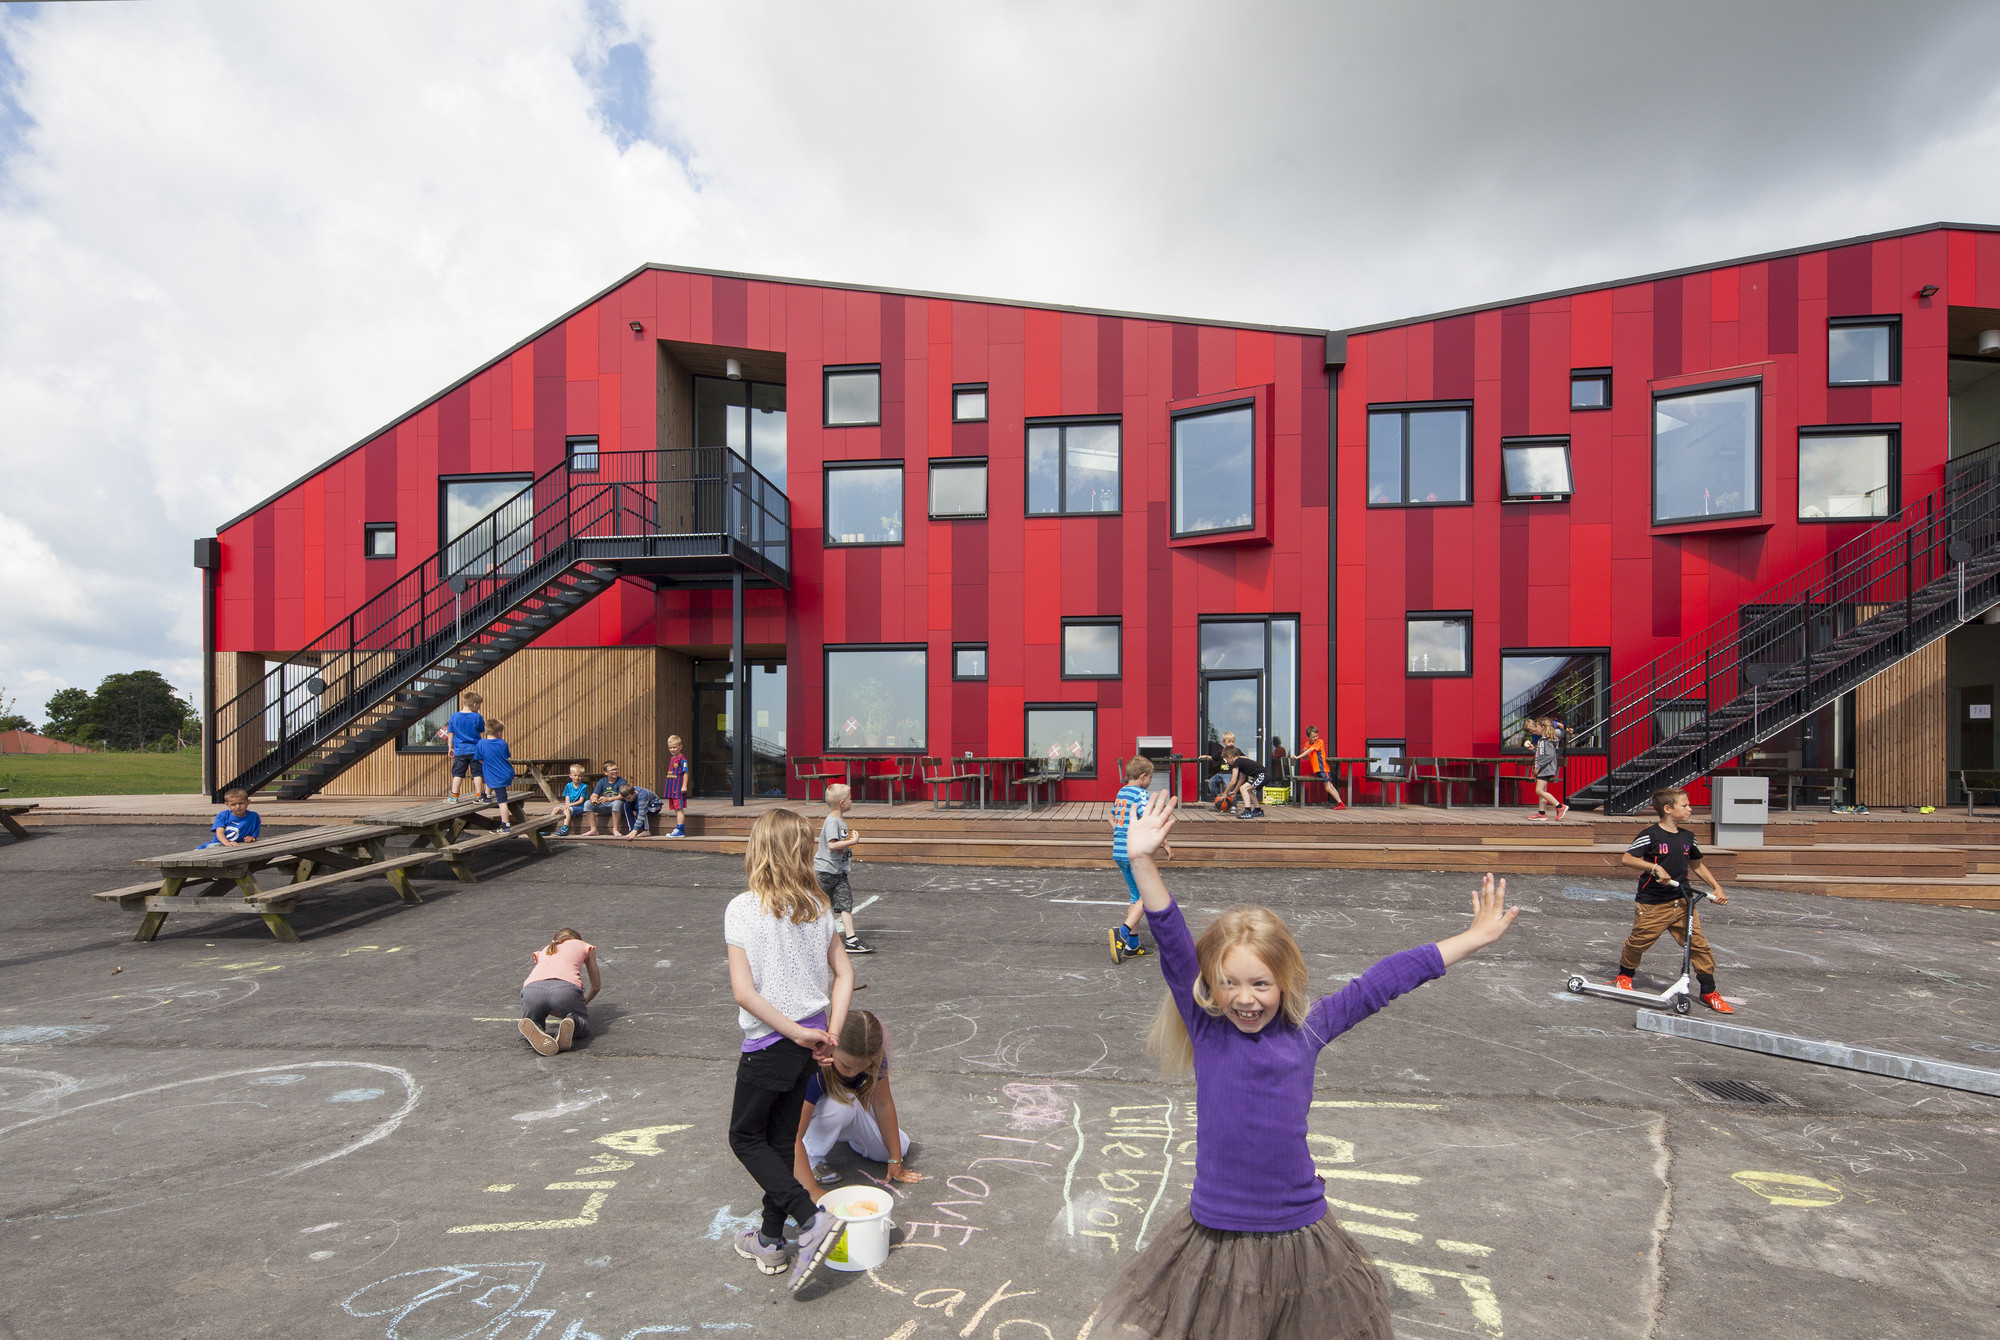 Gallery Of The Vibeeng School Arkitema Architects 8